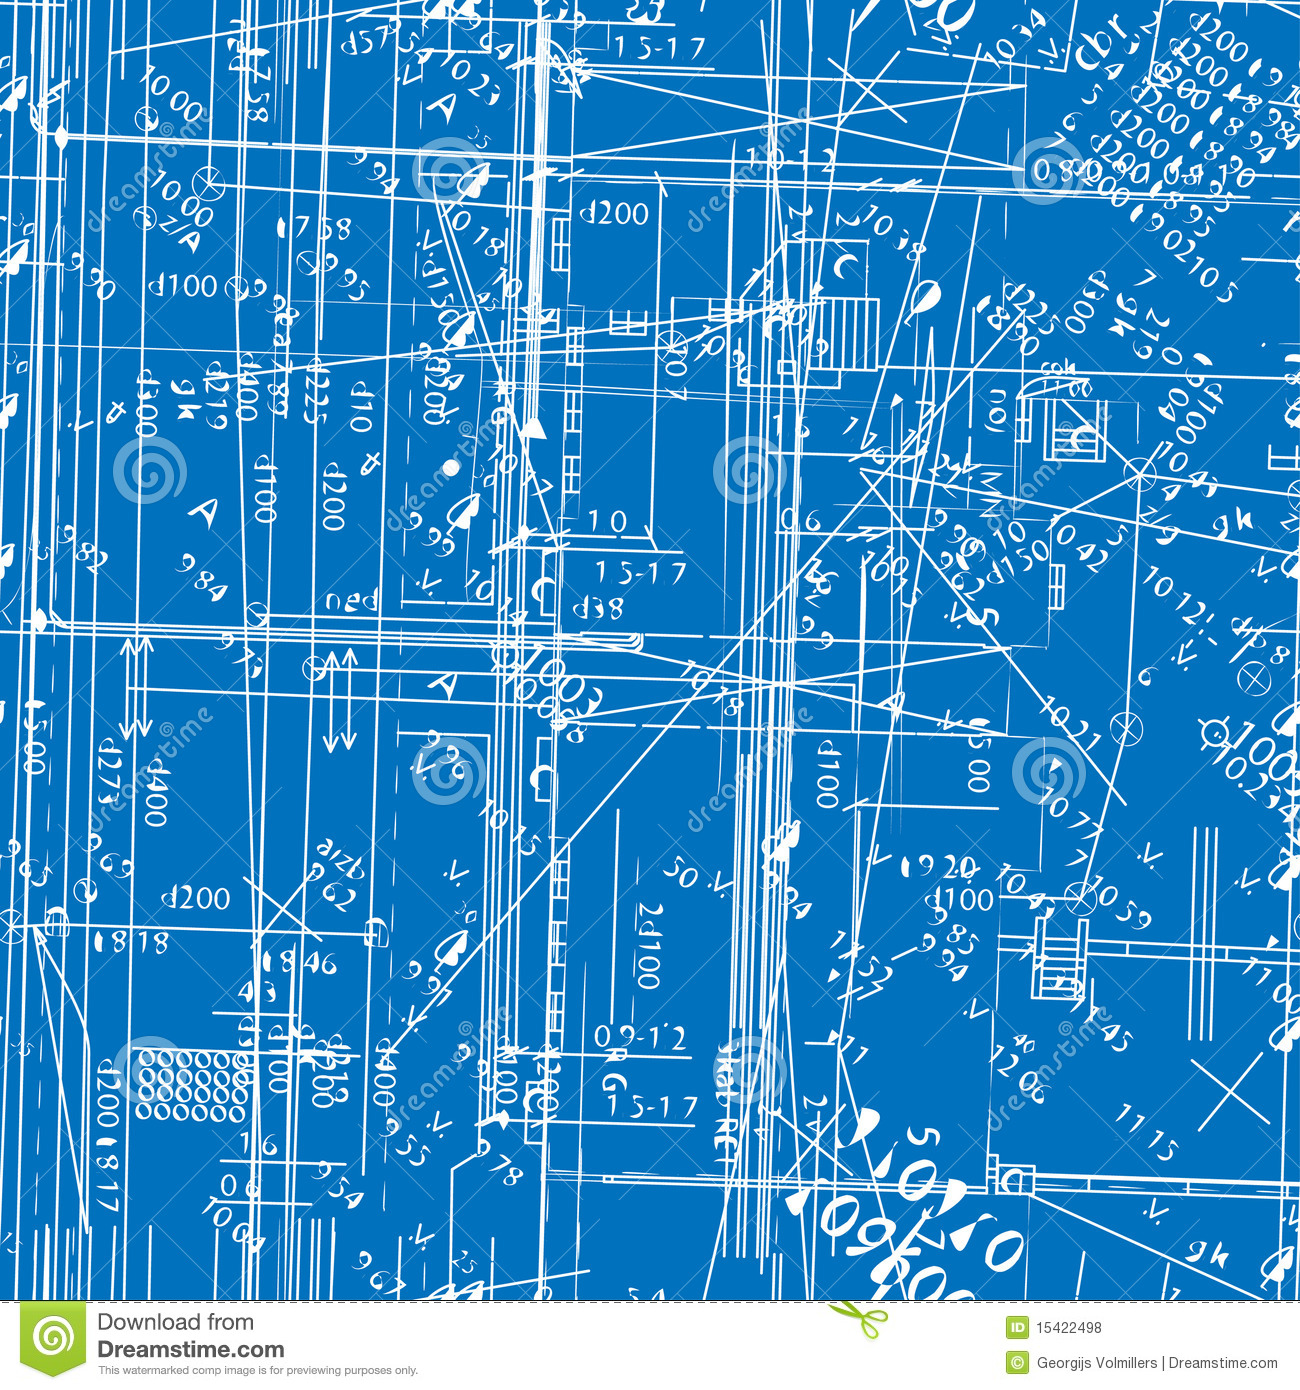 Seamless simulating engineering blueprint stock vector seamless simulating engineering blueprint malvernweather Images